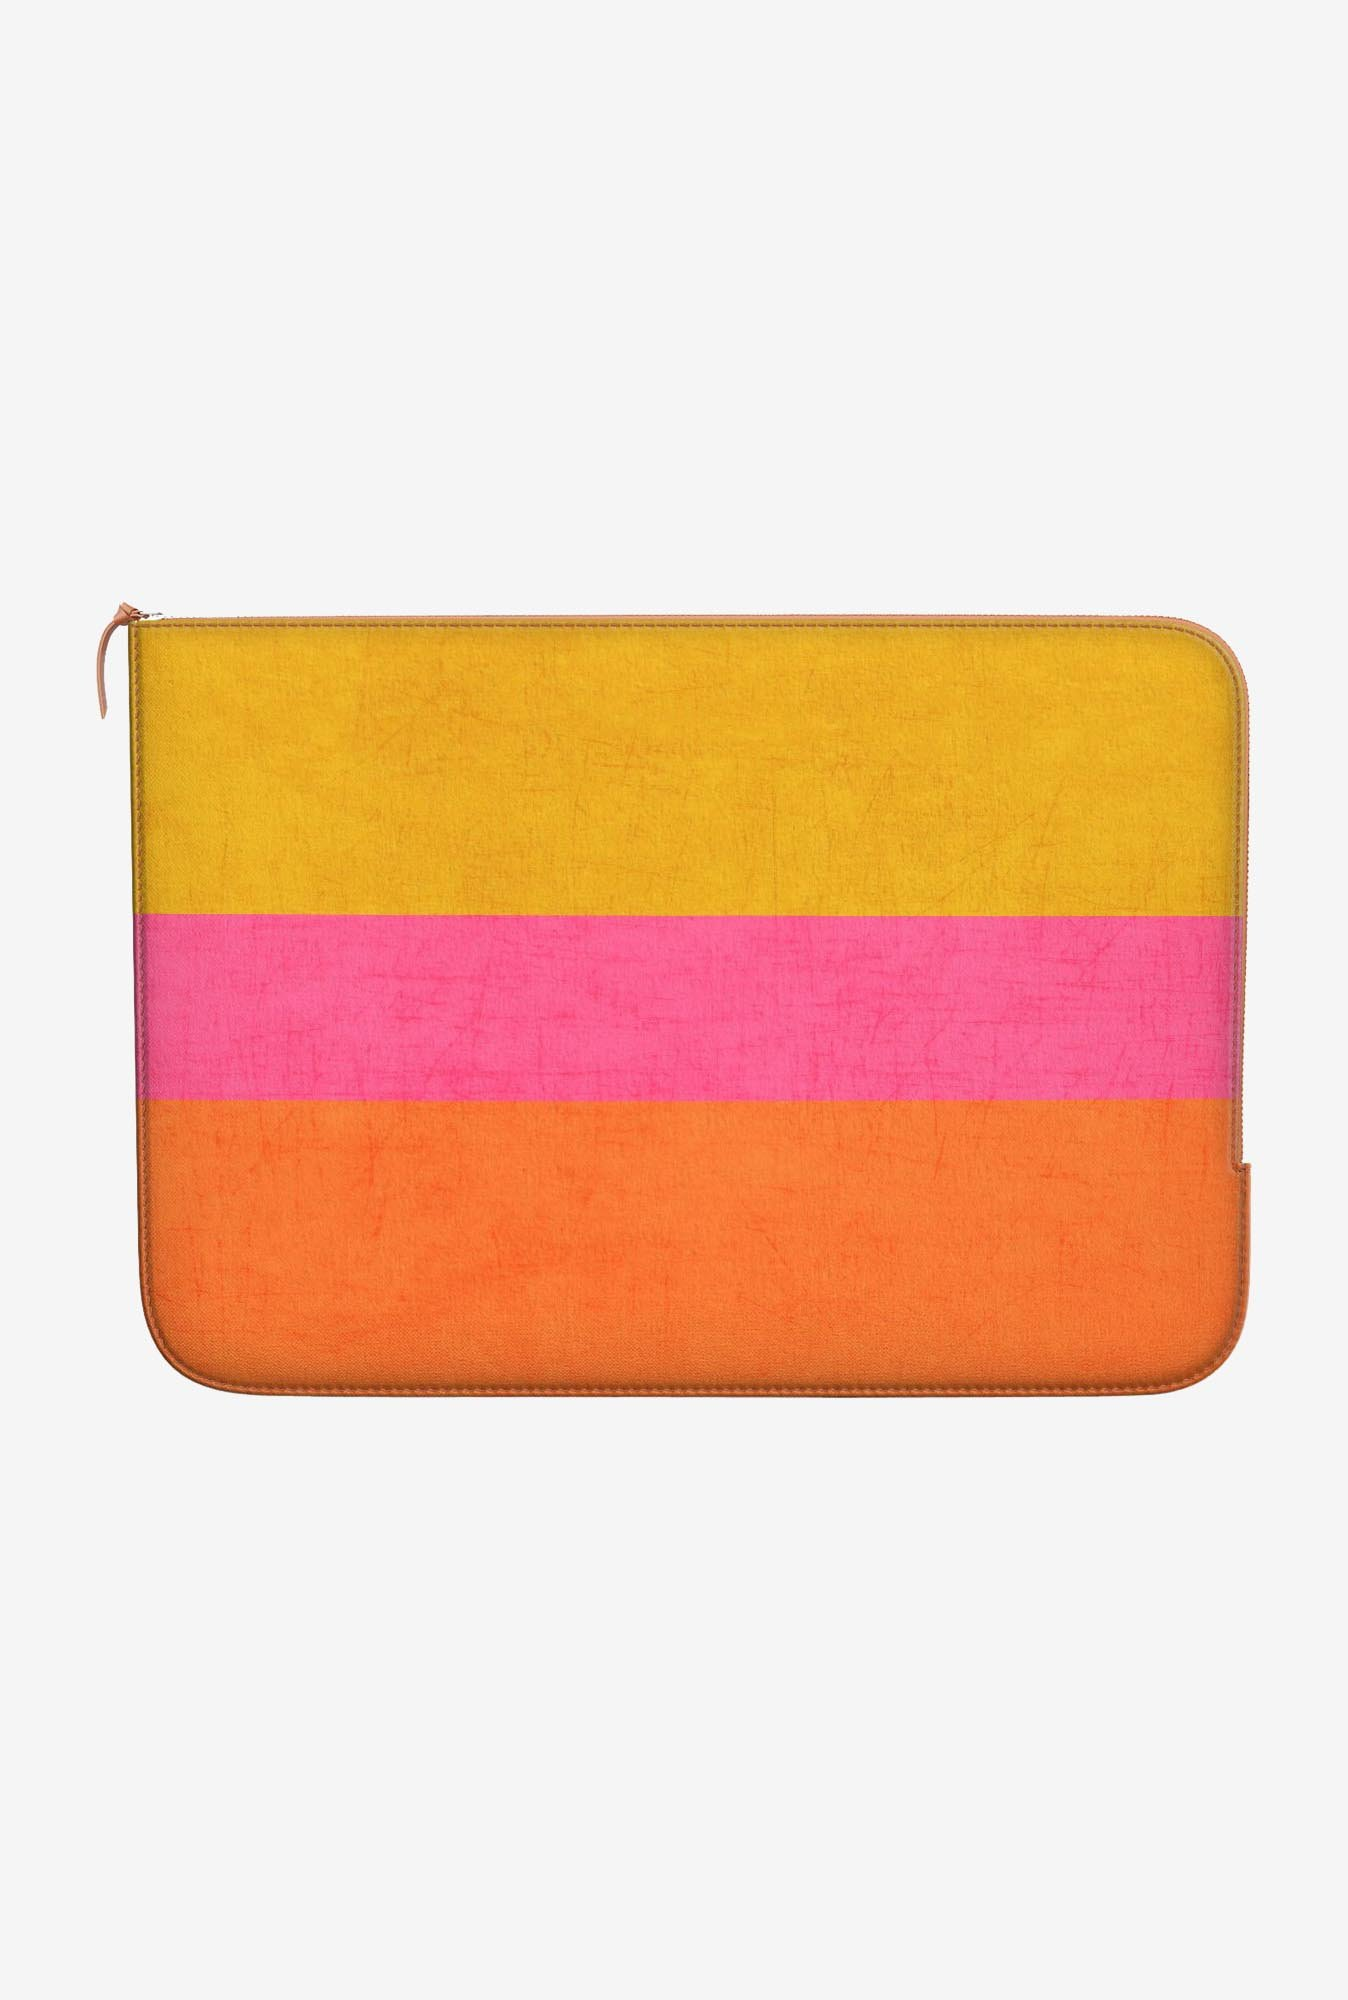 "DailyObjects Summer Classic Macbook Air 11"" Zippered Sleeve"